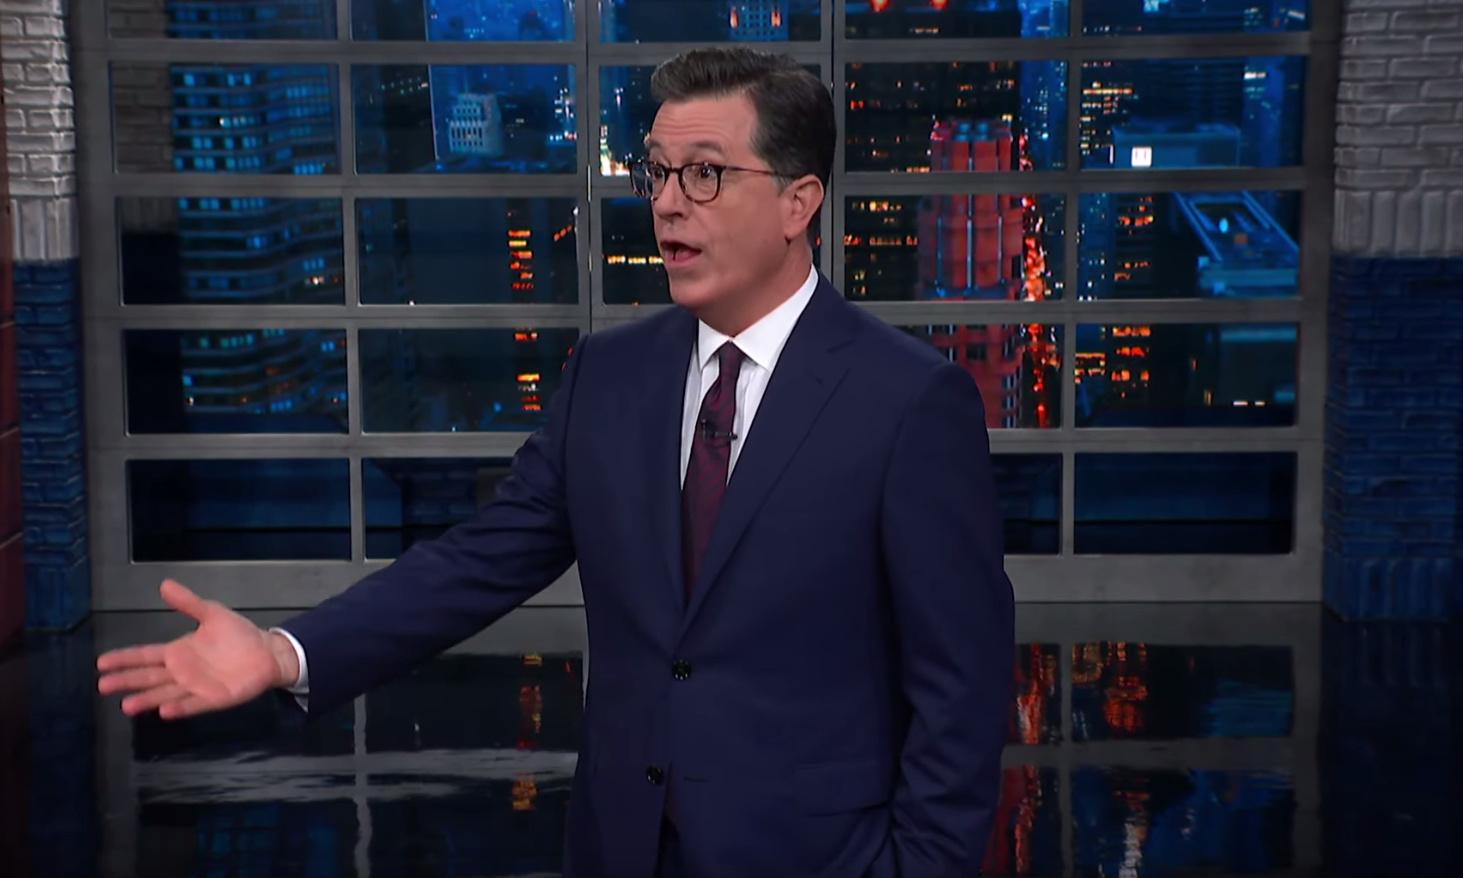 Stephen Colbert on Trump: 'An out-of-control toddler'